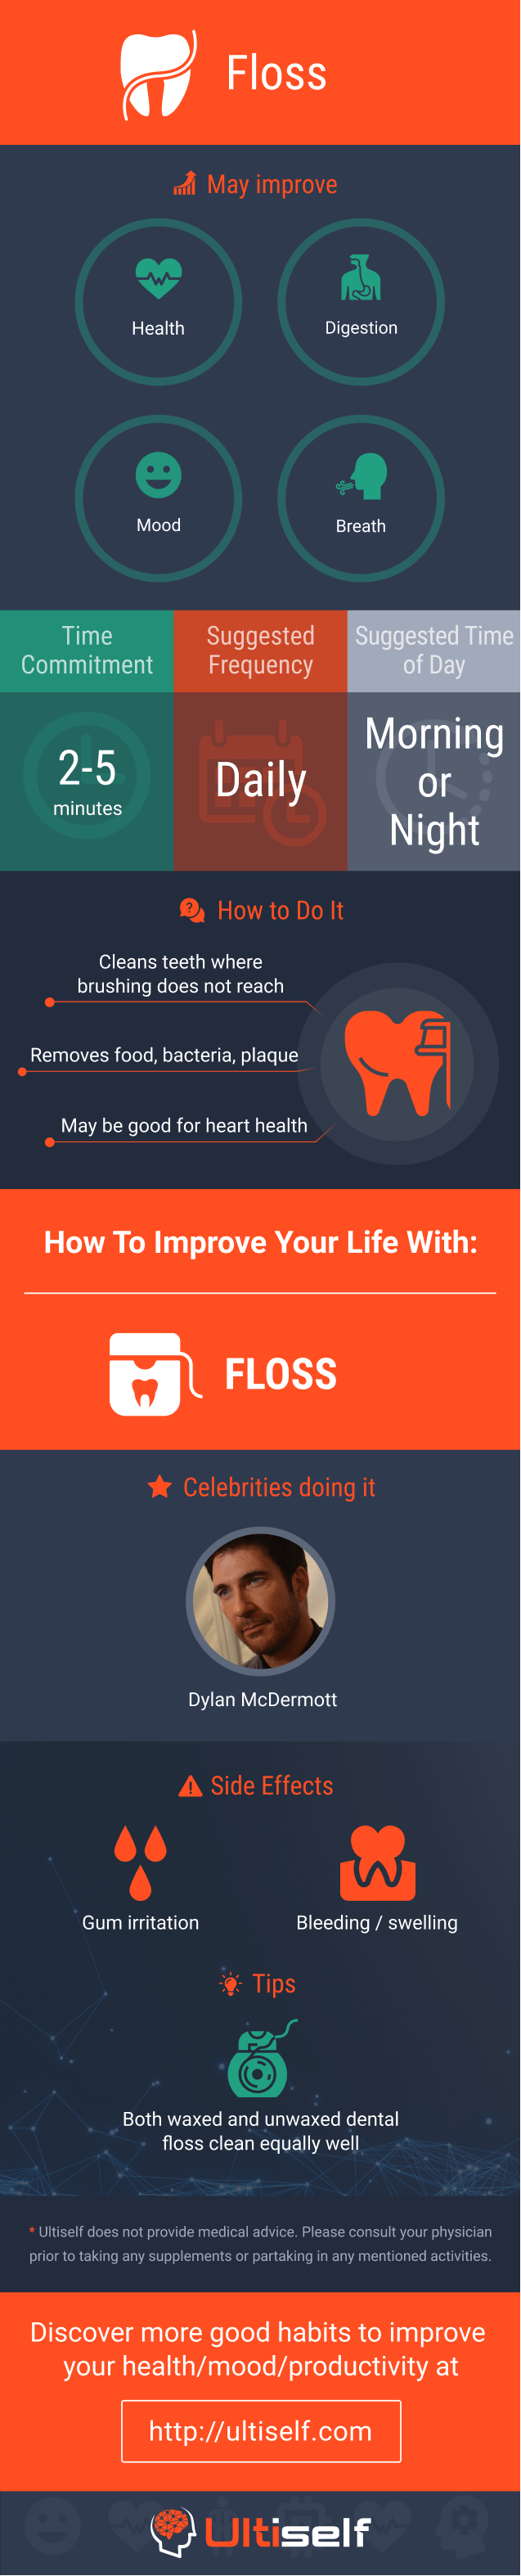 Floss infographic